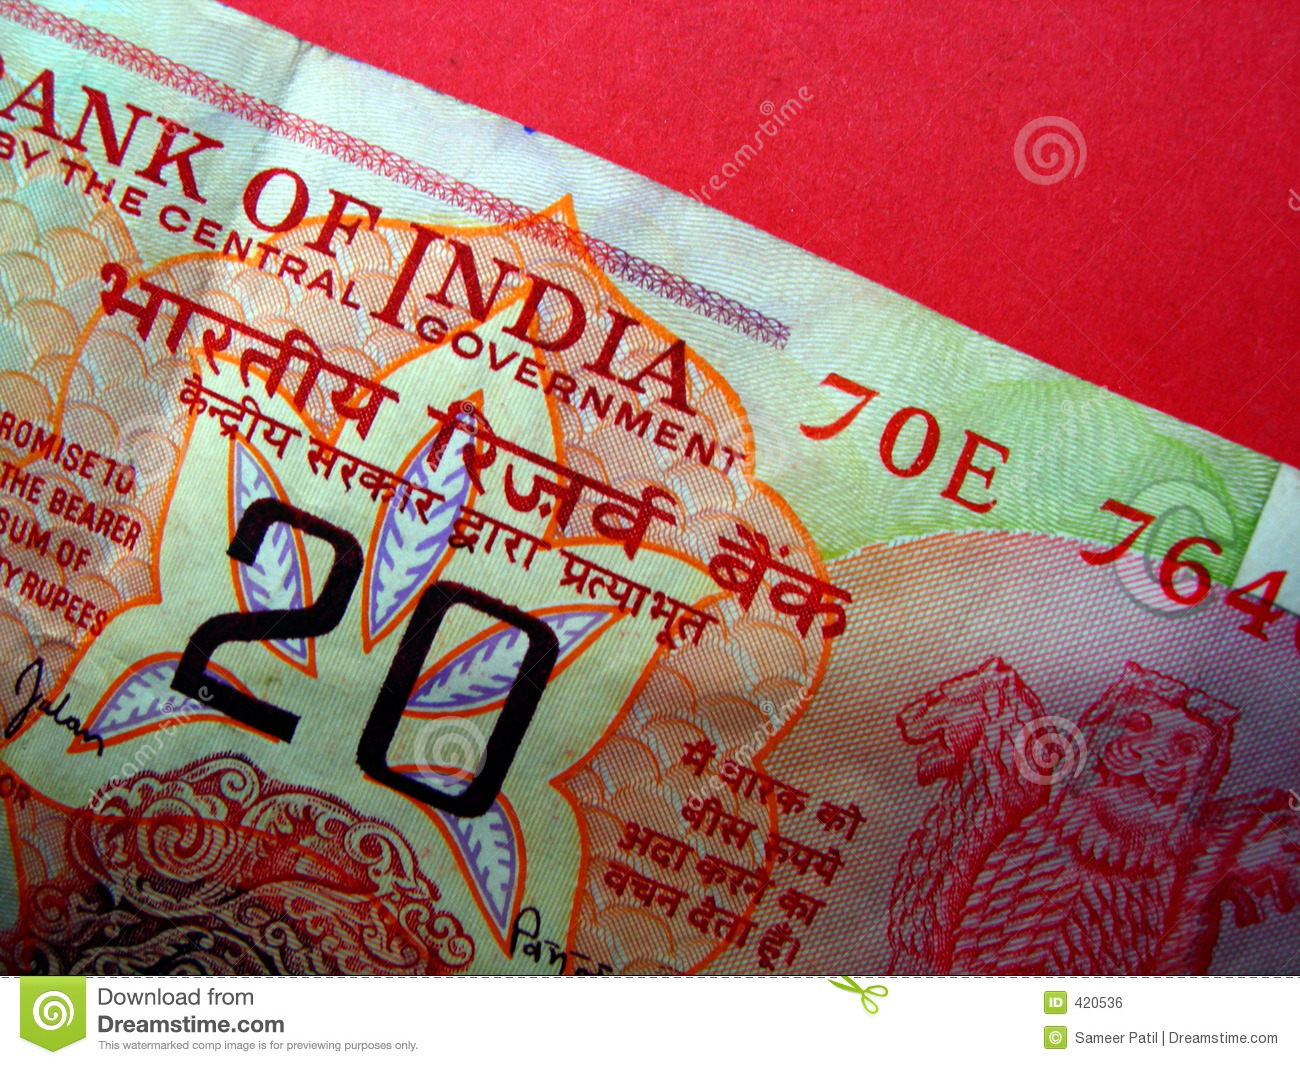 Currency_09 indien